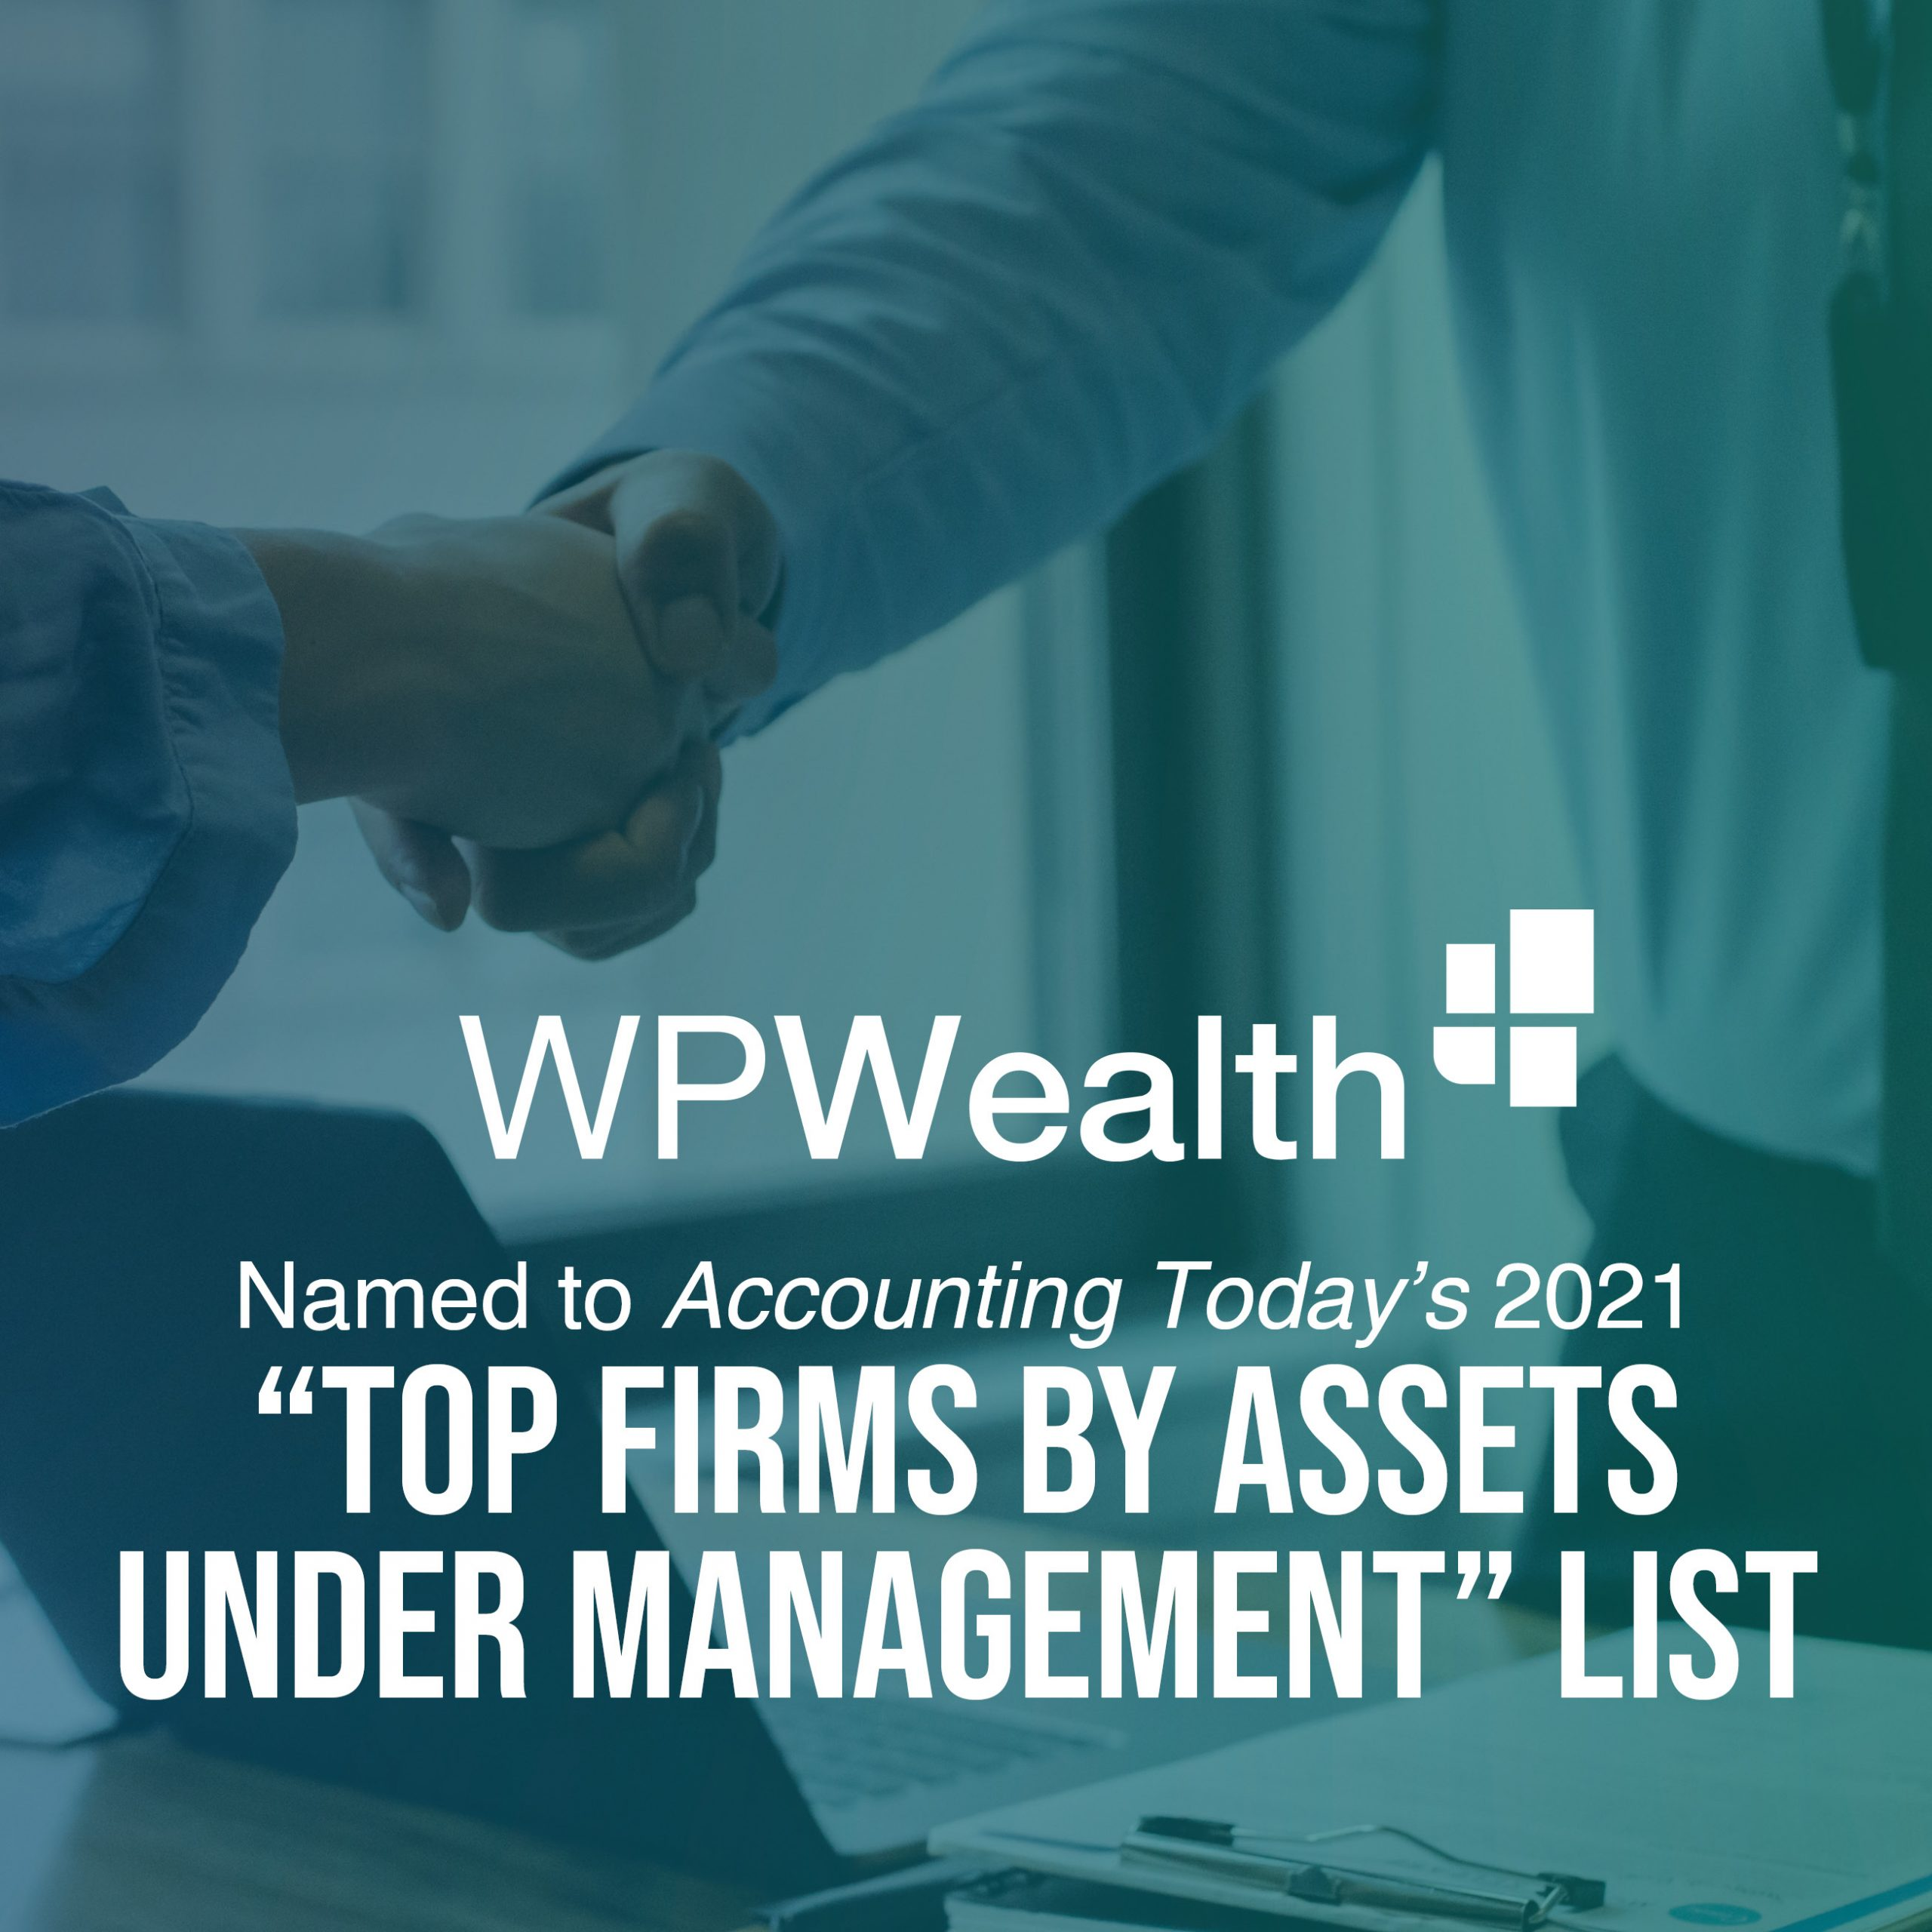 WPWealth named to Top Firms by Assets under management